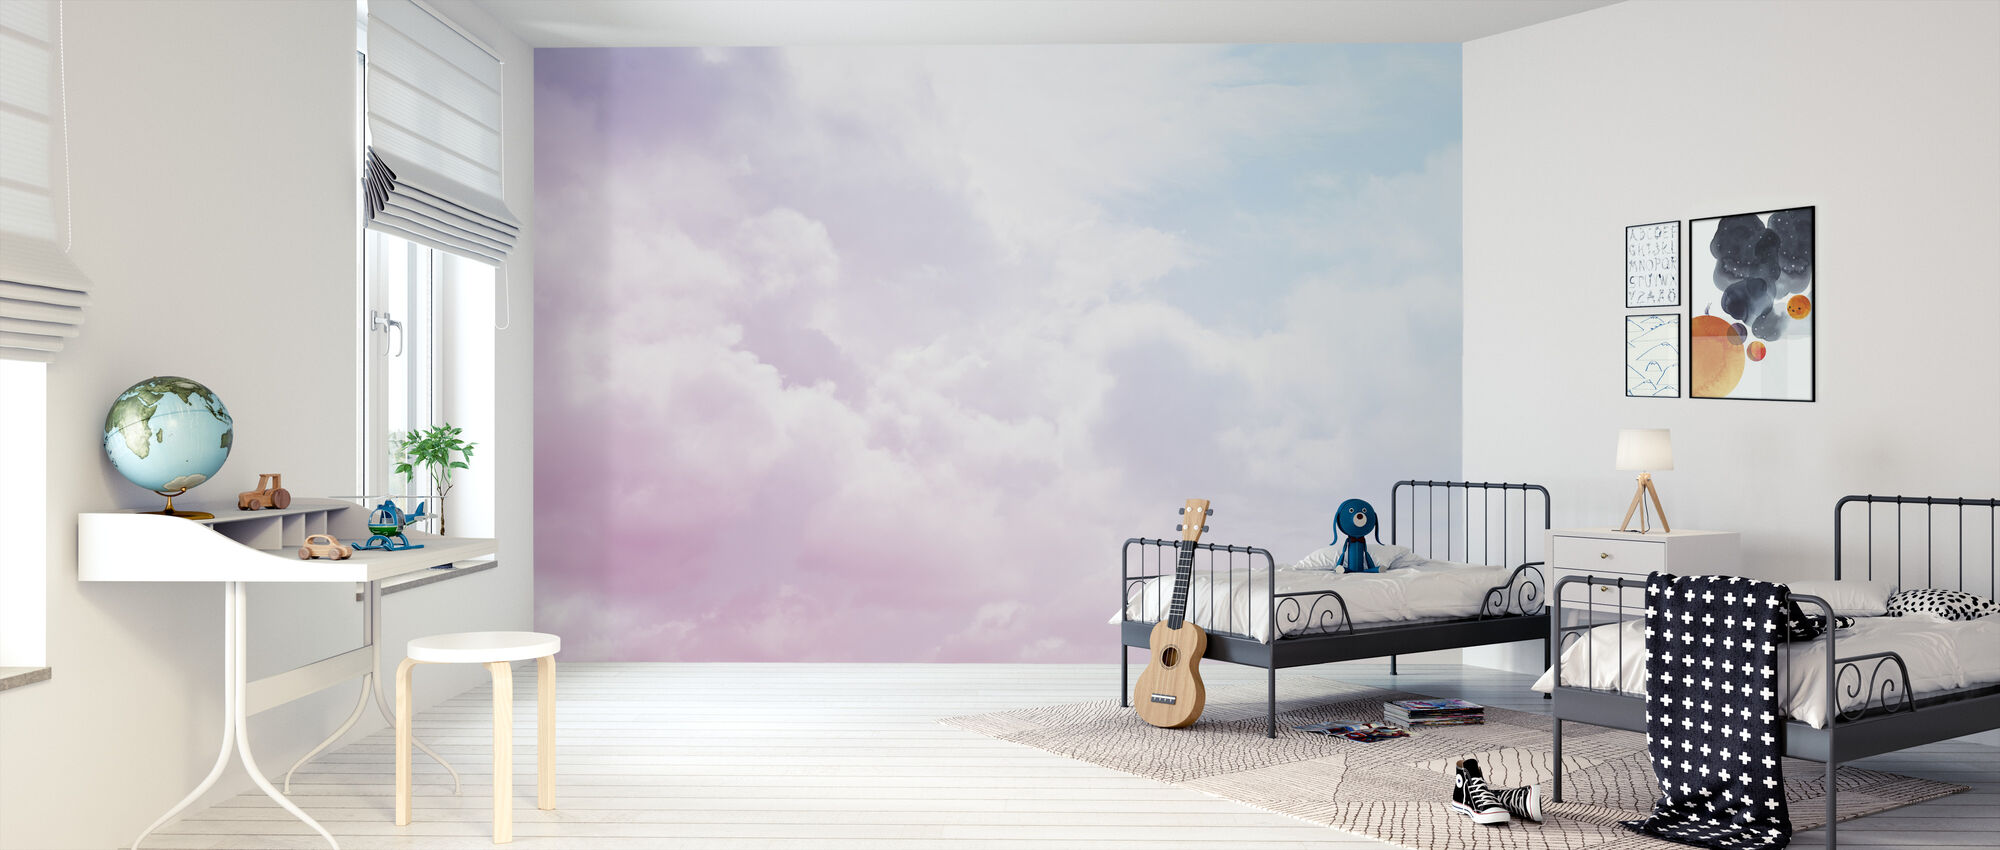 Cloudy Sky - Wallpaper - Kids Room